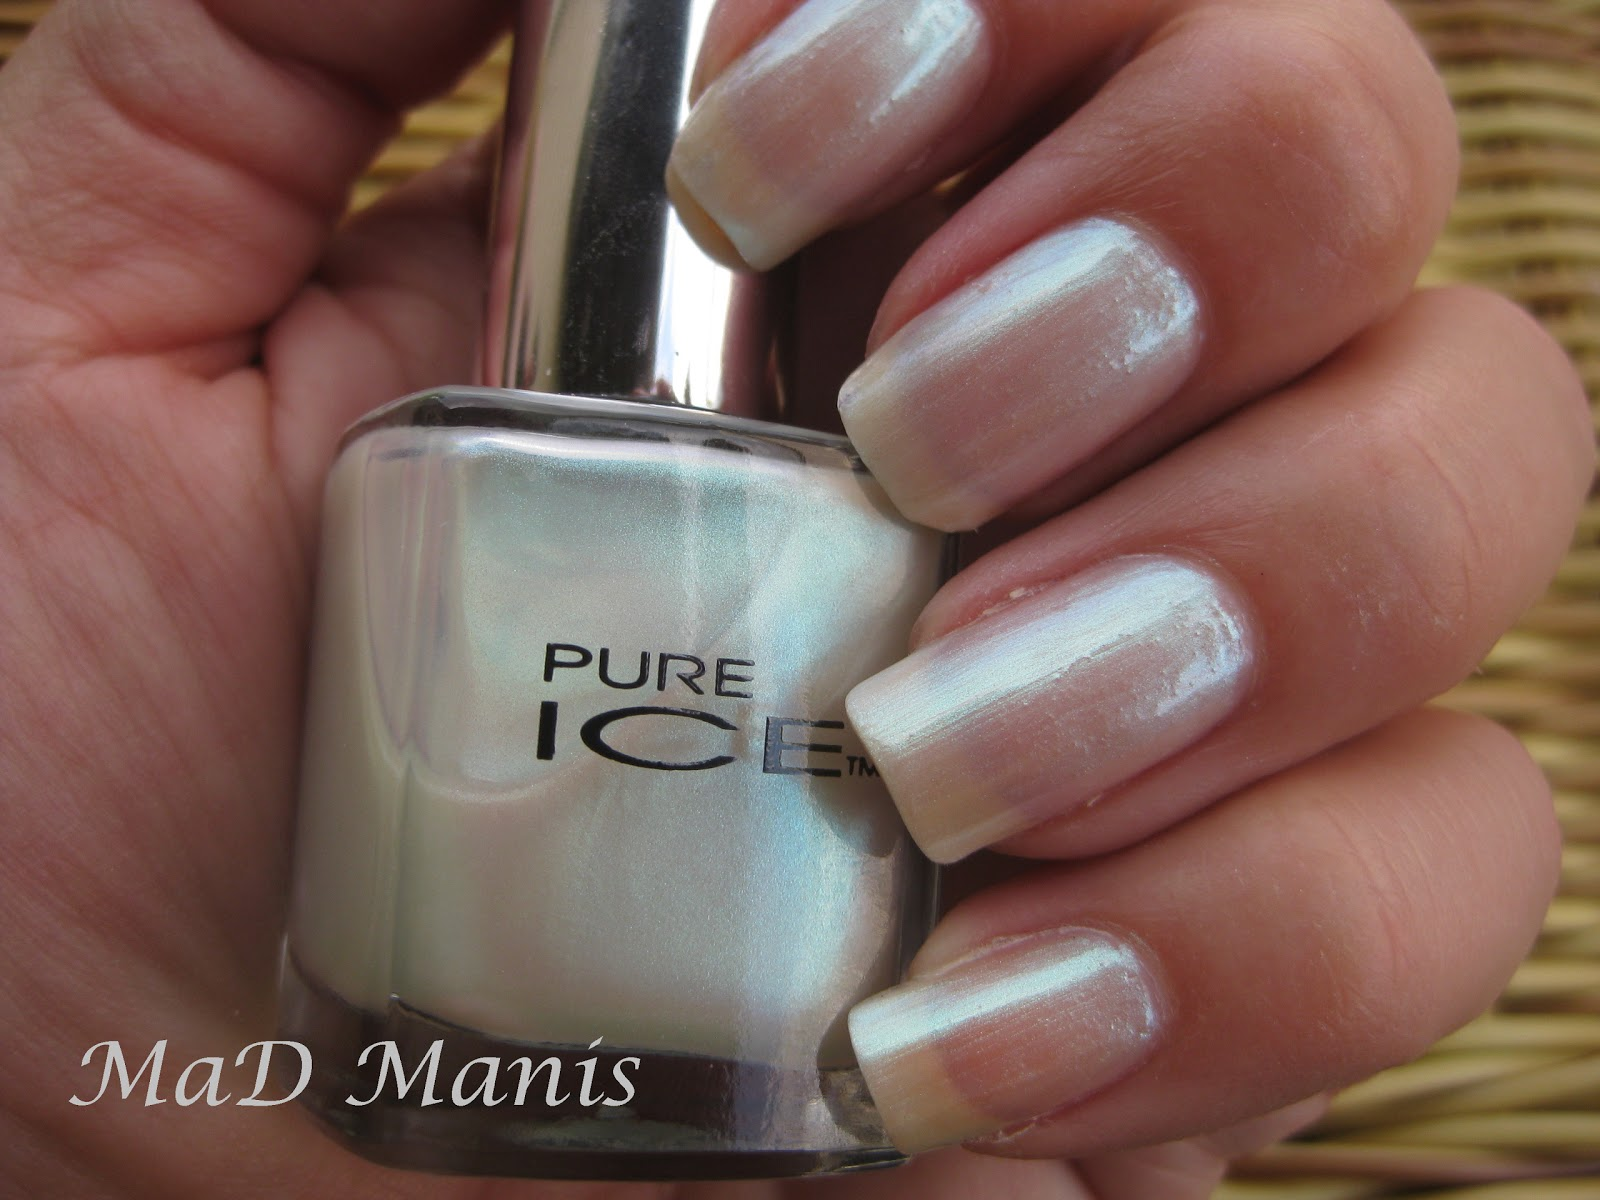 MaD Manis: Pure Ice swatches